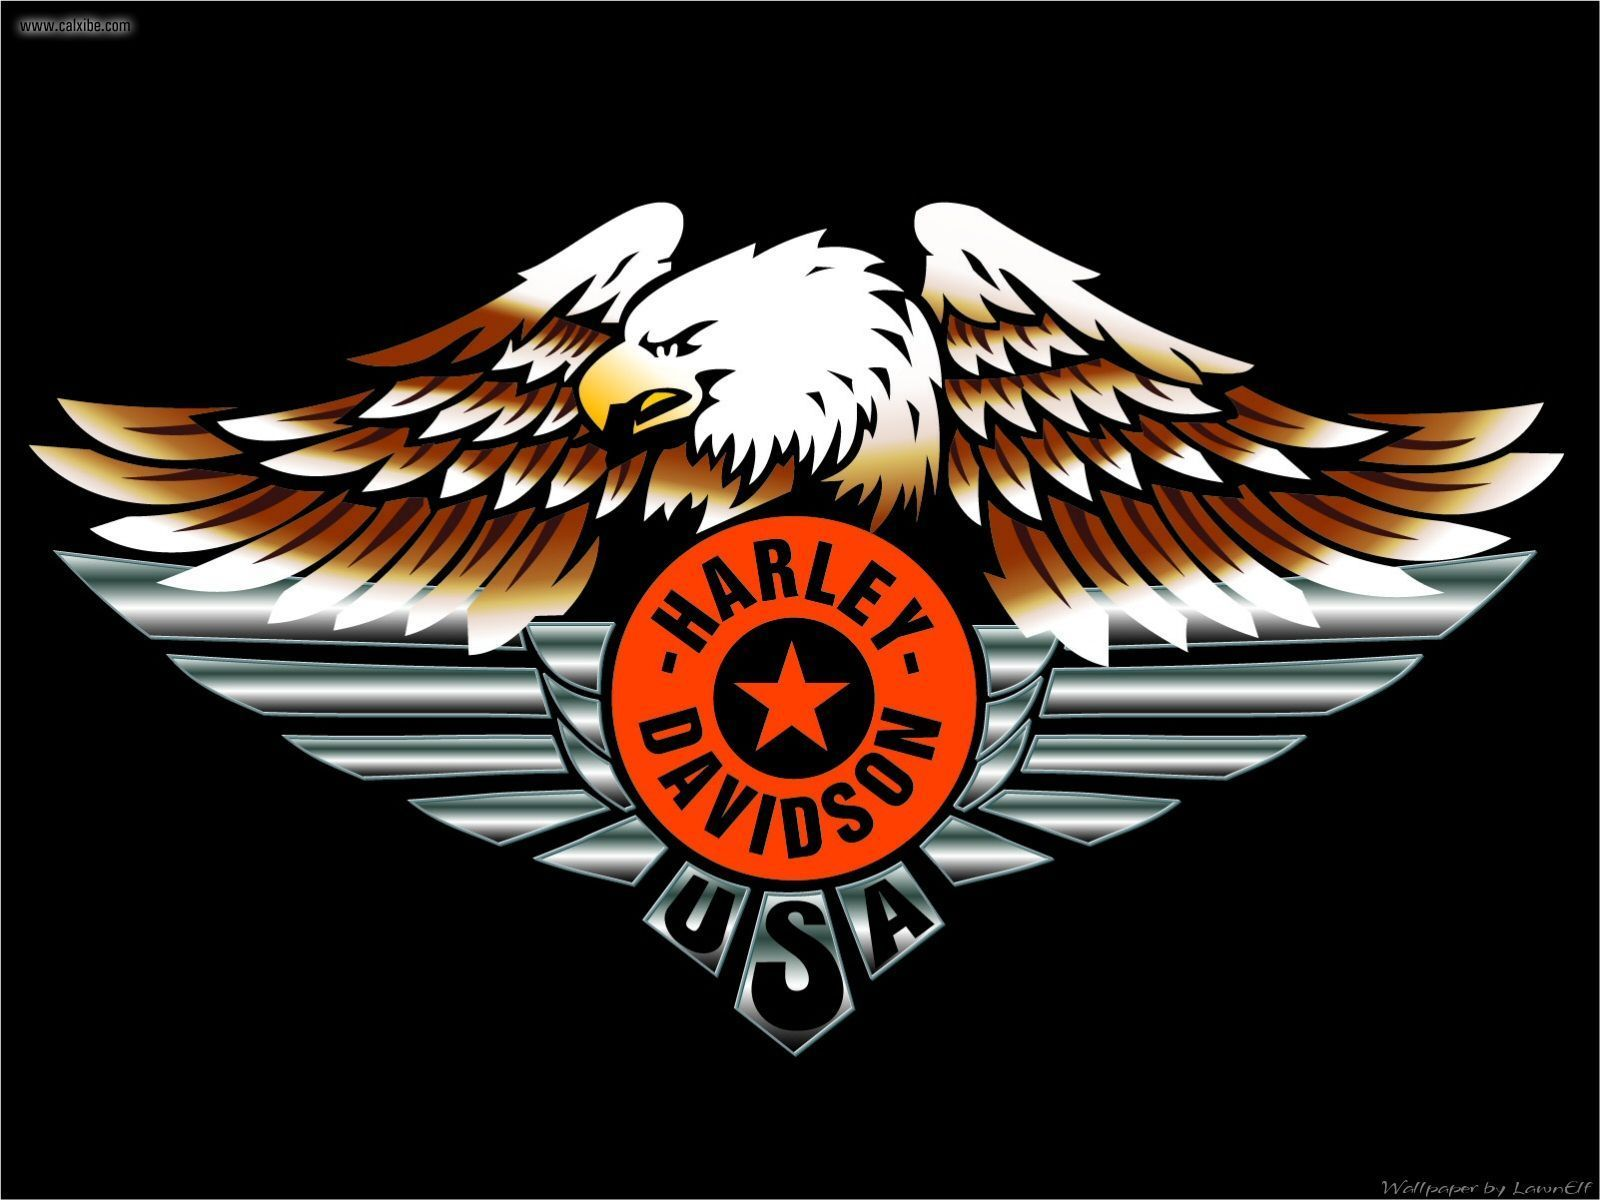 Harley Davidson Wallpapers And Screensavers: The Coolest Blog: Harley Davidson